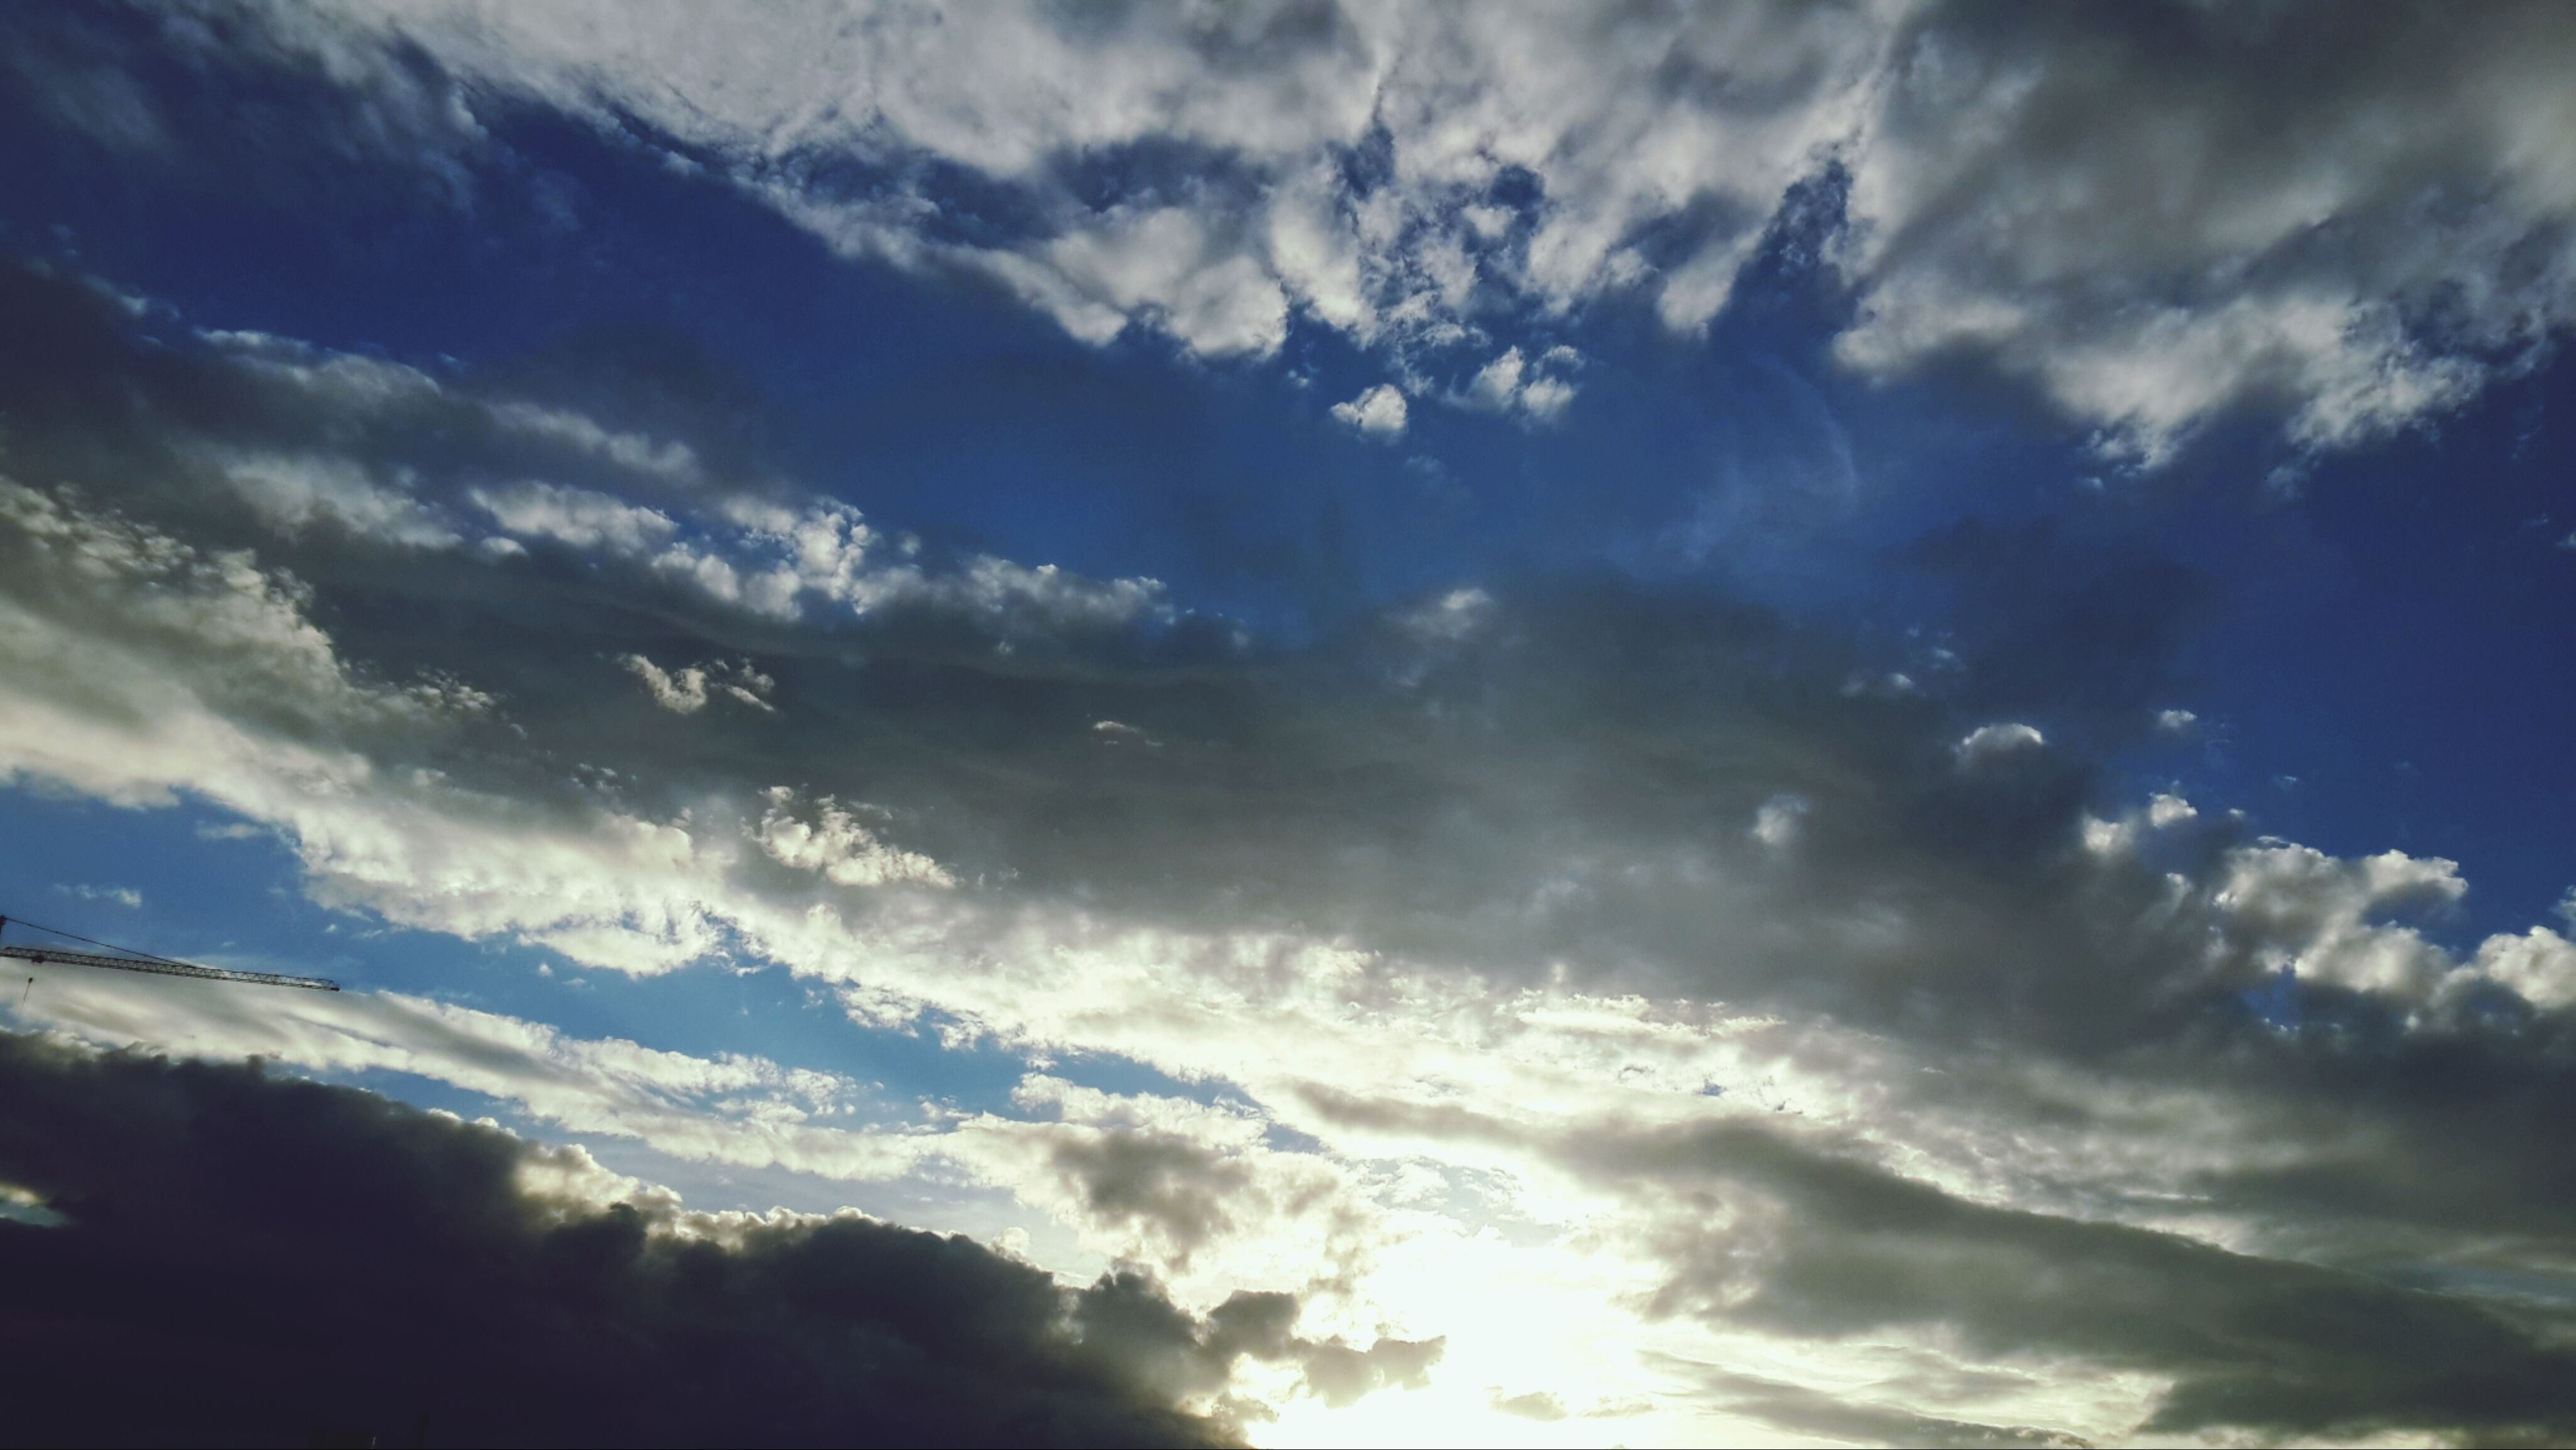 sky, tranquility, cloud - sky, tranquil scene, scenics, beauty in nature, low angle view, nature, cloudy, idyllic, cloud, cloudscape, sunlight, silhouette, sunset, weather, sunbeam, outdoors, sun, no people